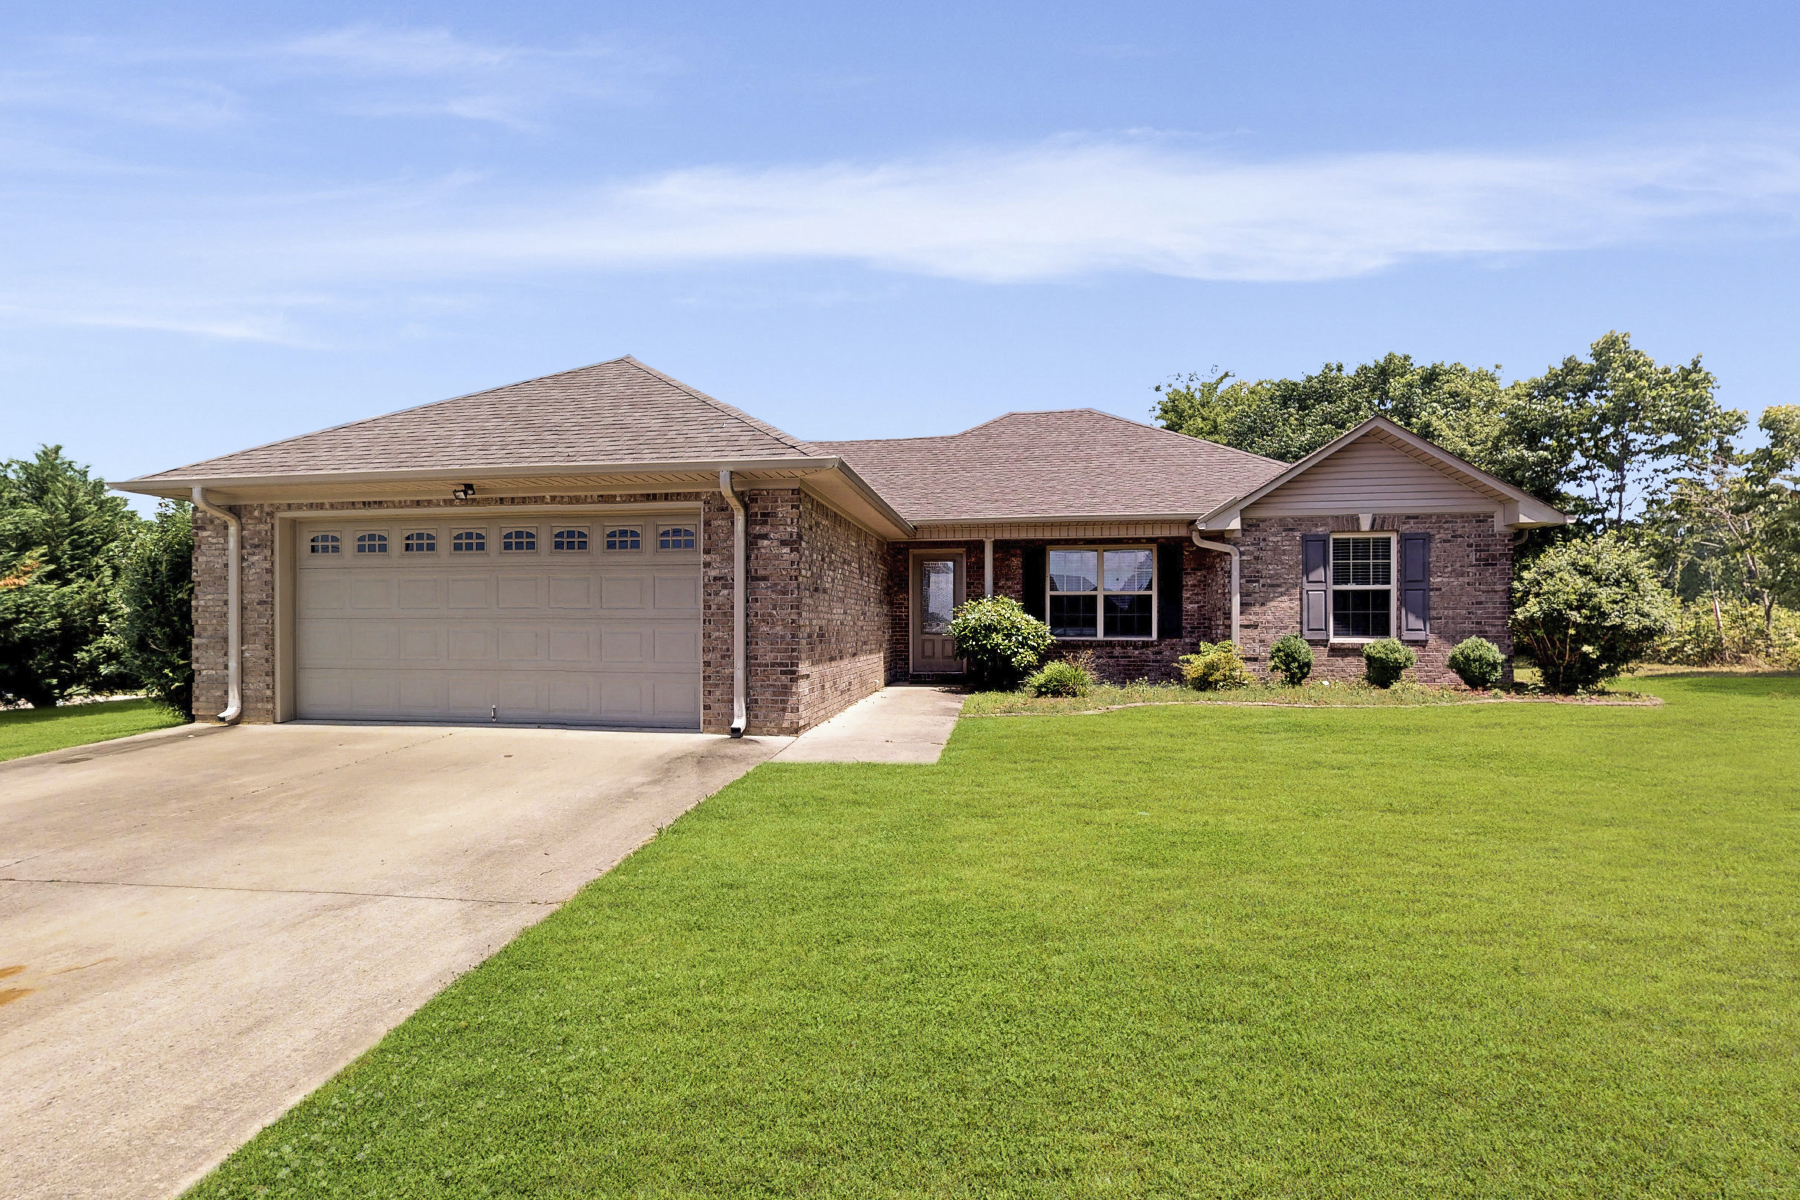 Single Family Homes for Active at 24147 Jacobs Drive Athens, Alabama 35613 United States